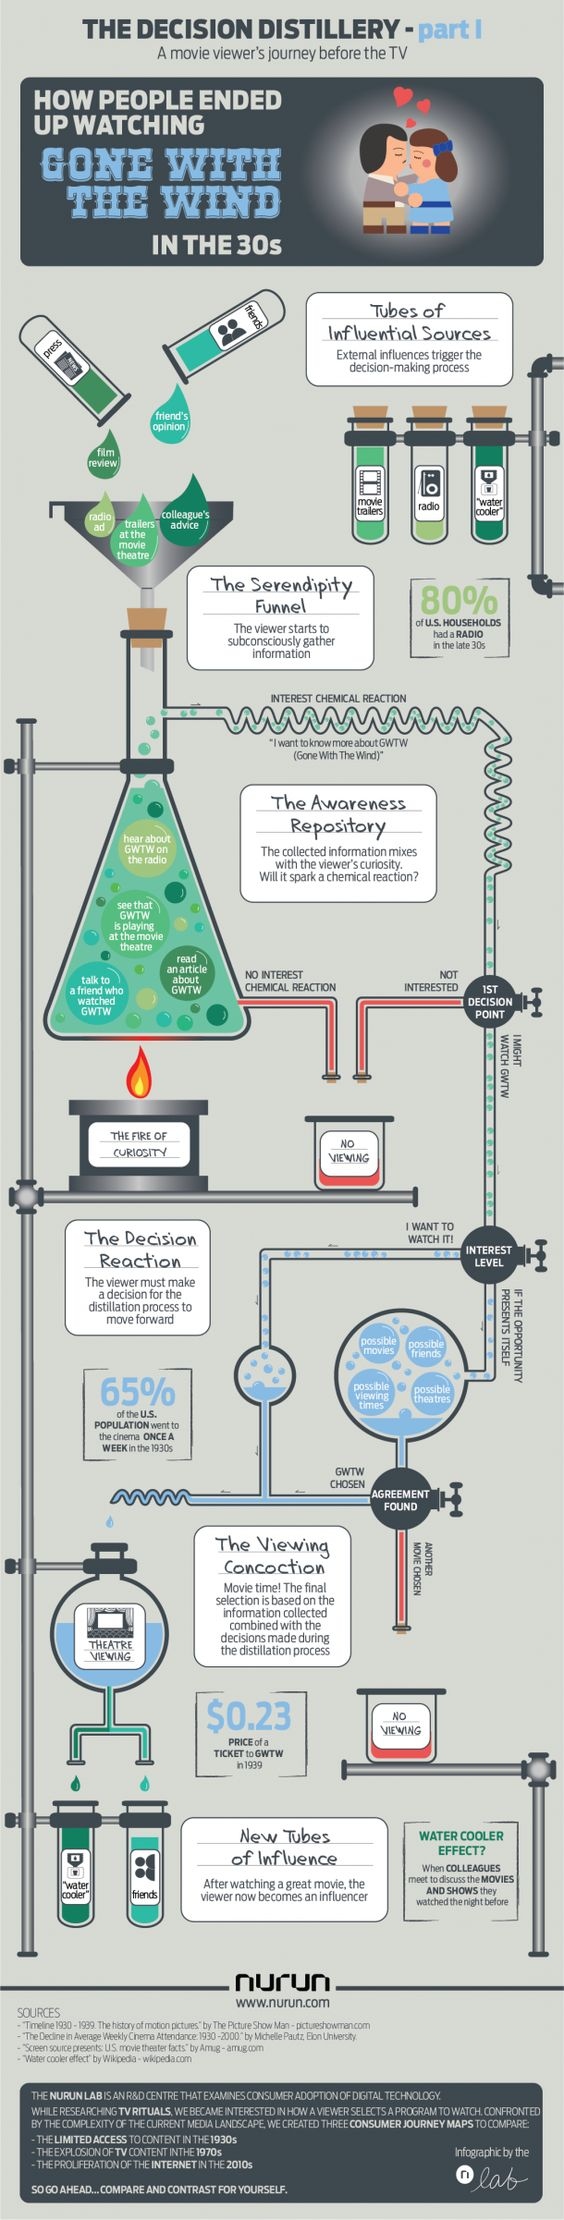 The Decision Distillery: Part 1[INFOGRAPHIC]